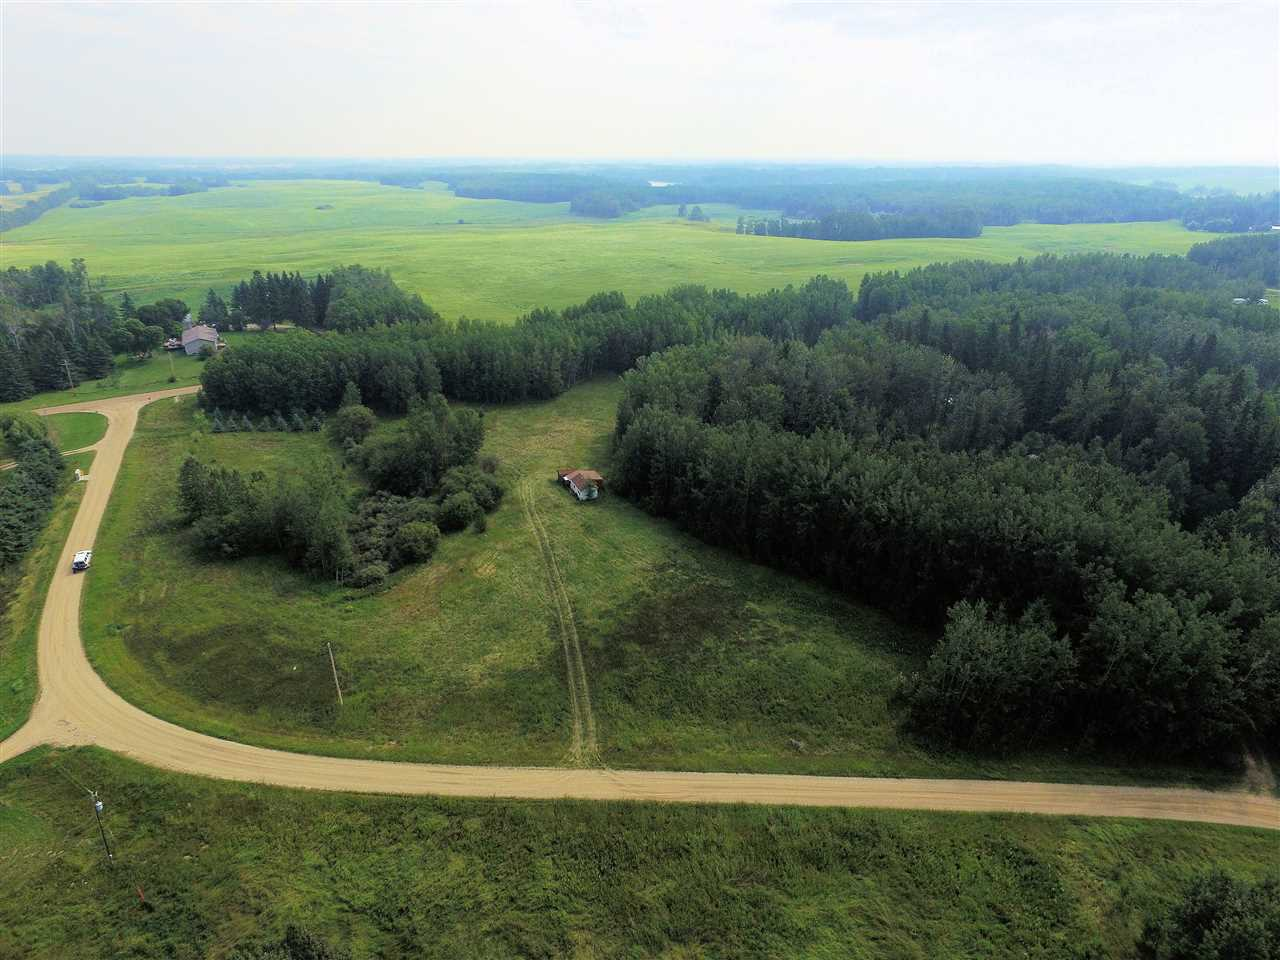 Main Photo: 28 52414 RGE RD 30 Road: Rural Parkland County Rural Land/Vacant Lot for sale : MLS® # E4078364